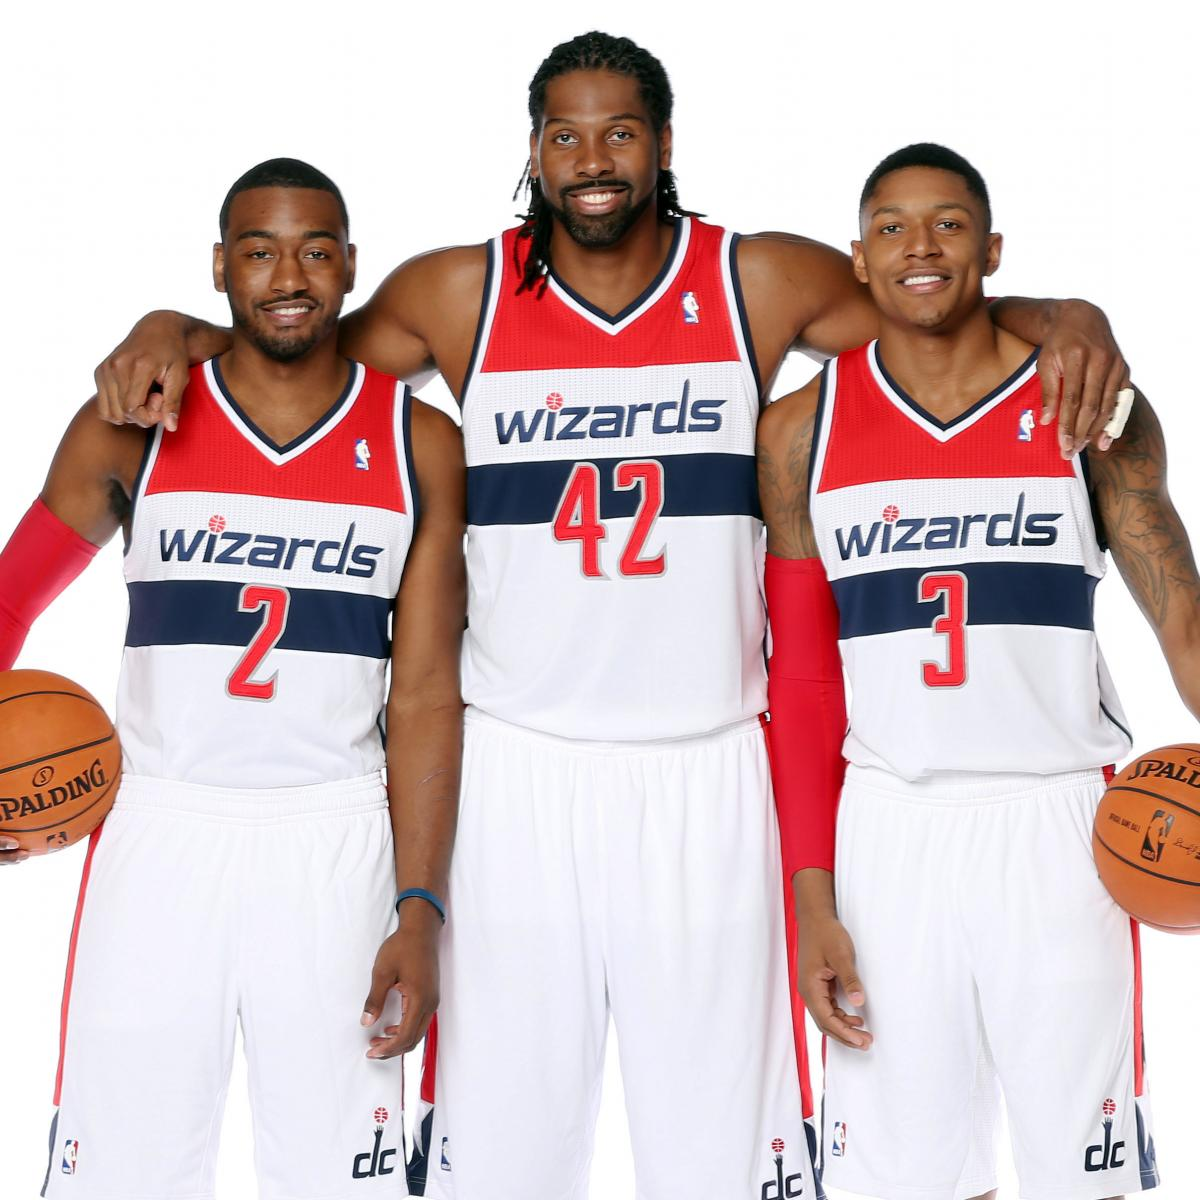 Blazer Team Roster 2013: Washington Wizards Preview 2013-14: Lineup, Roster